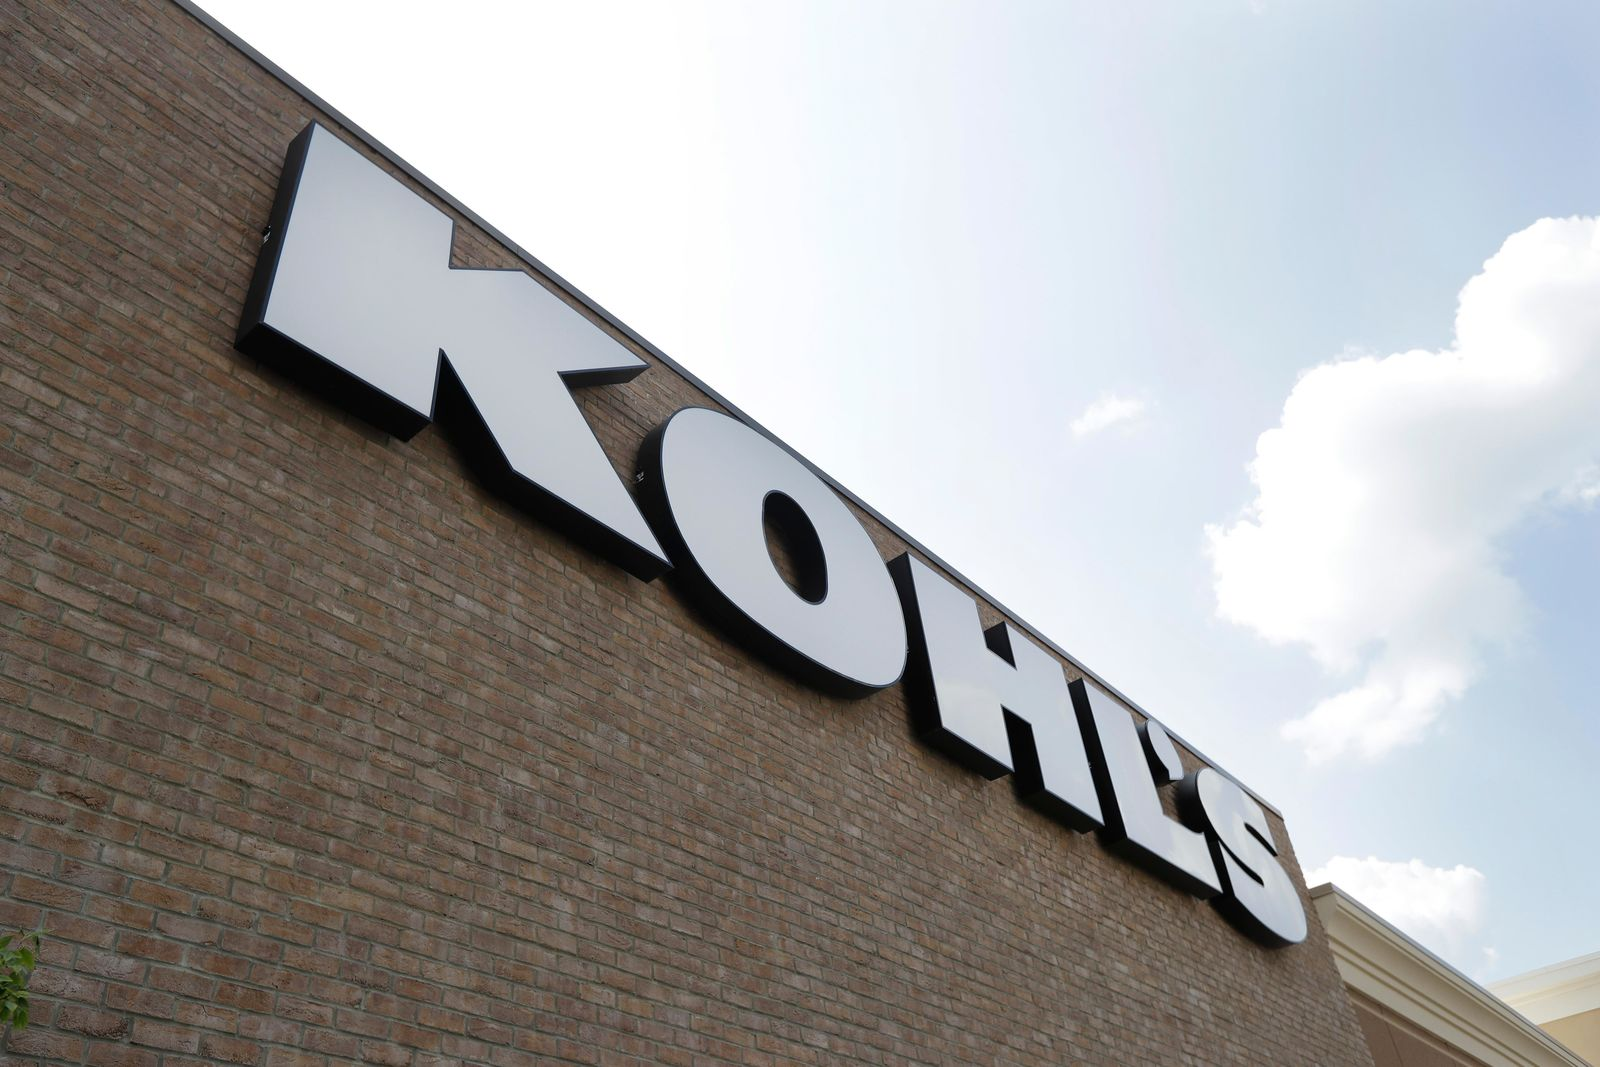 In this Aug. 28, 2018, fie photo, a Kohl's sign is shown in front of a Kohl's store in Concord, N.C. On Thursday, Jan. 10, 2019, Kohl's reported a small sales growth that showed a dramatic slowdown from a year ago. (AP Photo/Chuck Burton, File)